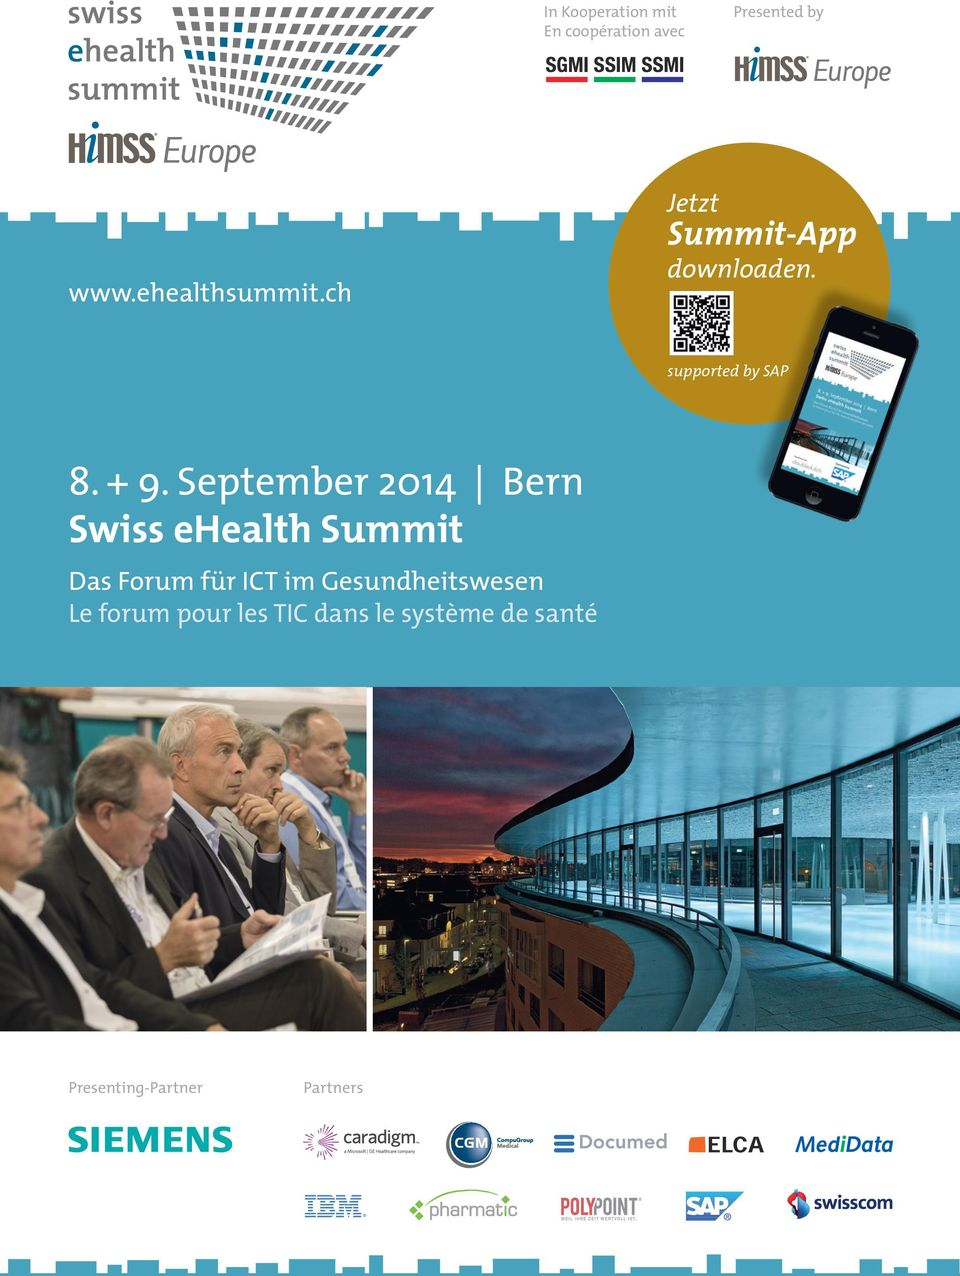 September 2014 Bern Swiss ehealth Summit Das Forum für ICT im